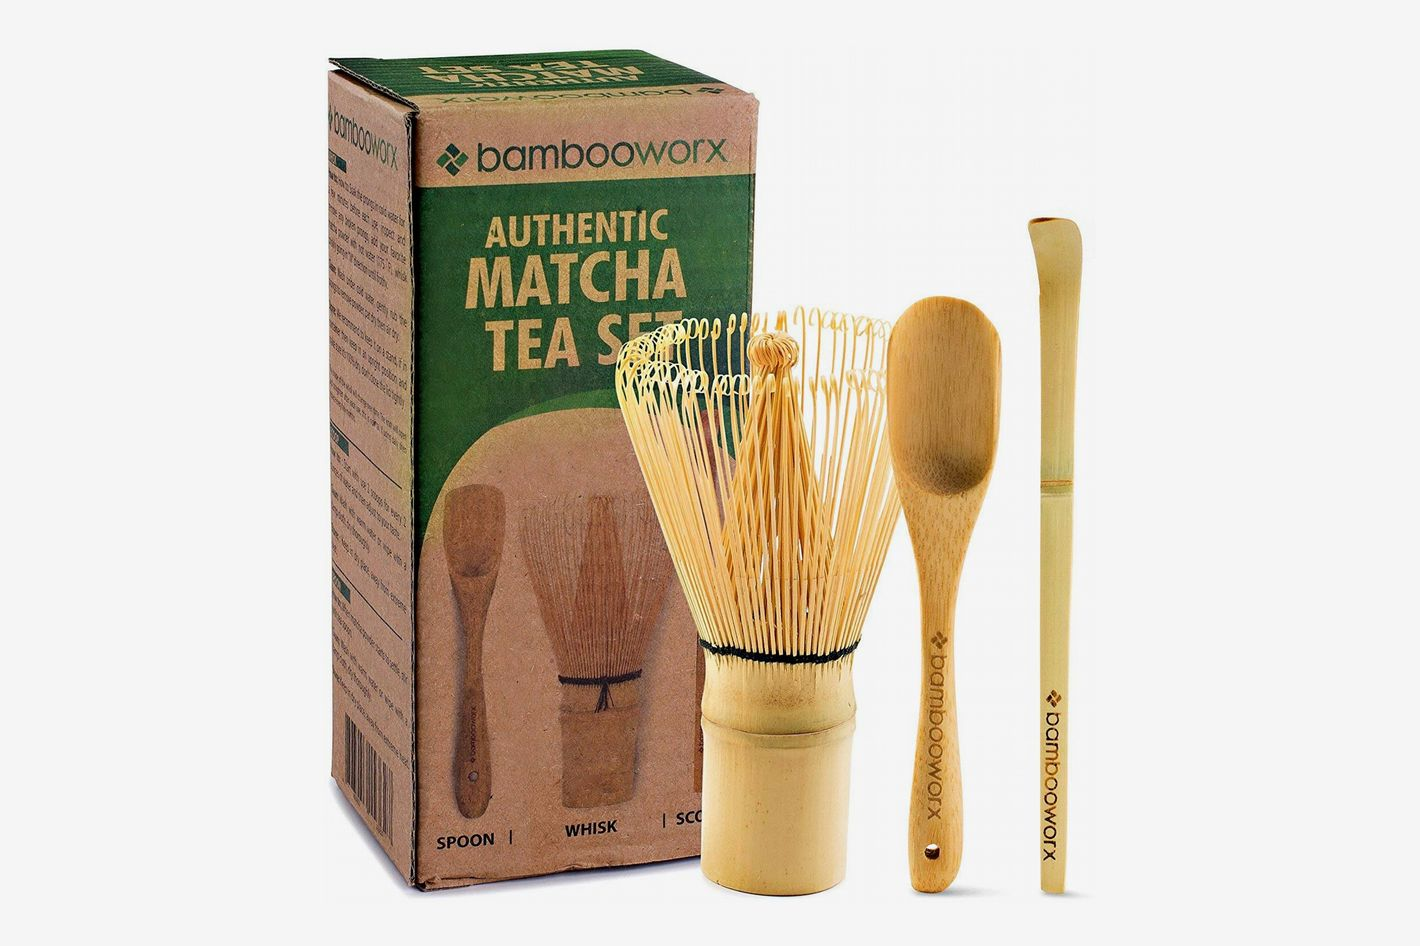 BAMBOOWORX Japanese Tea Set